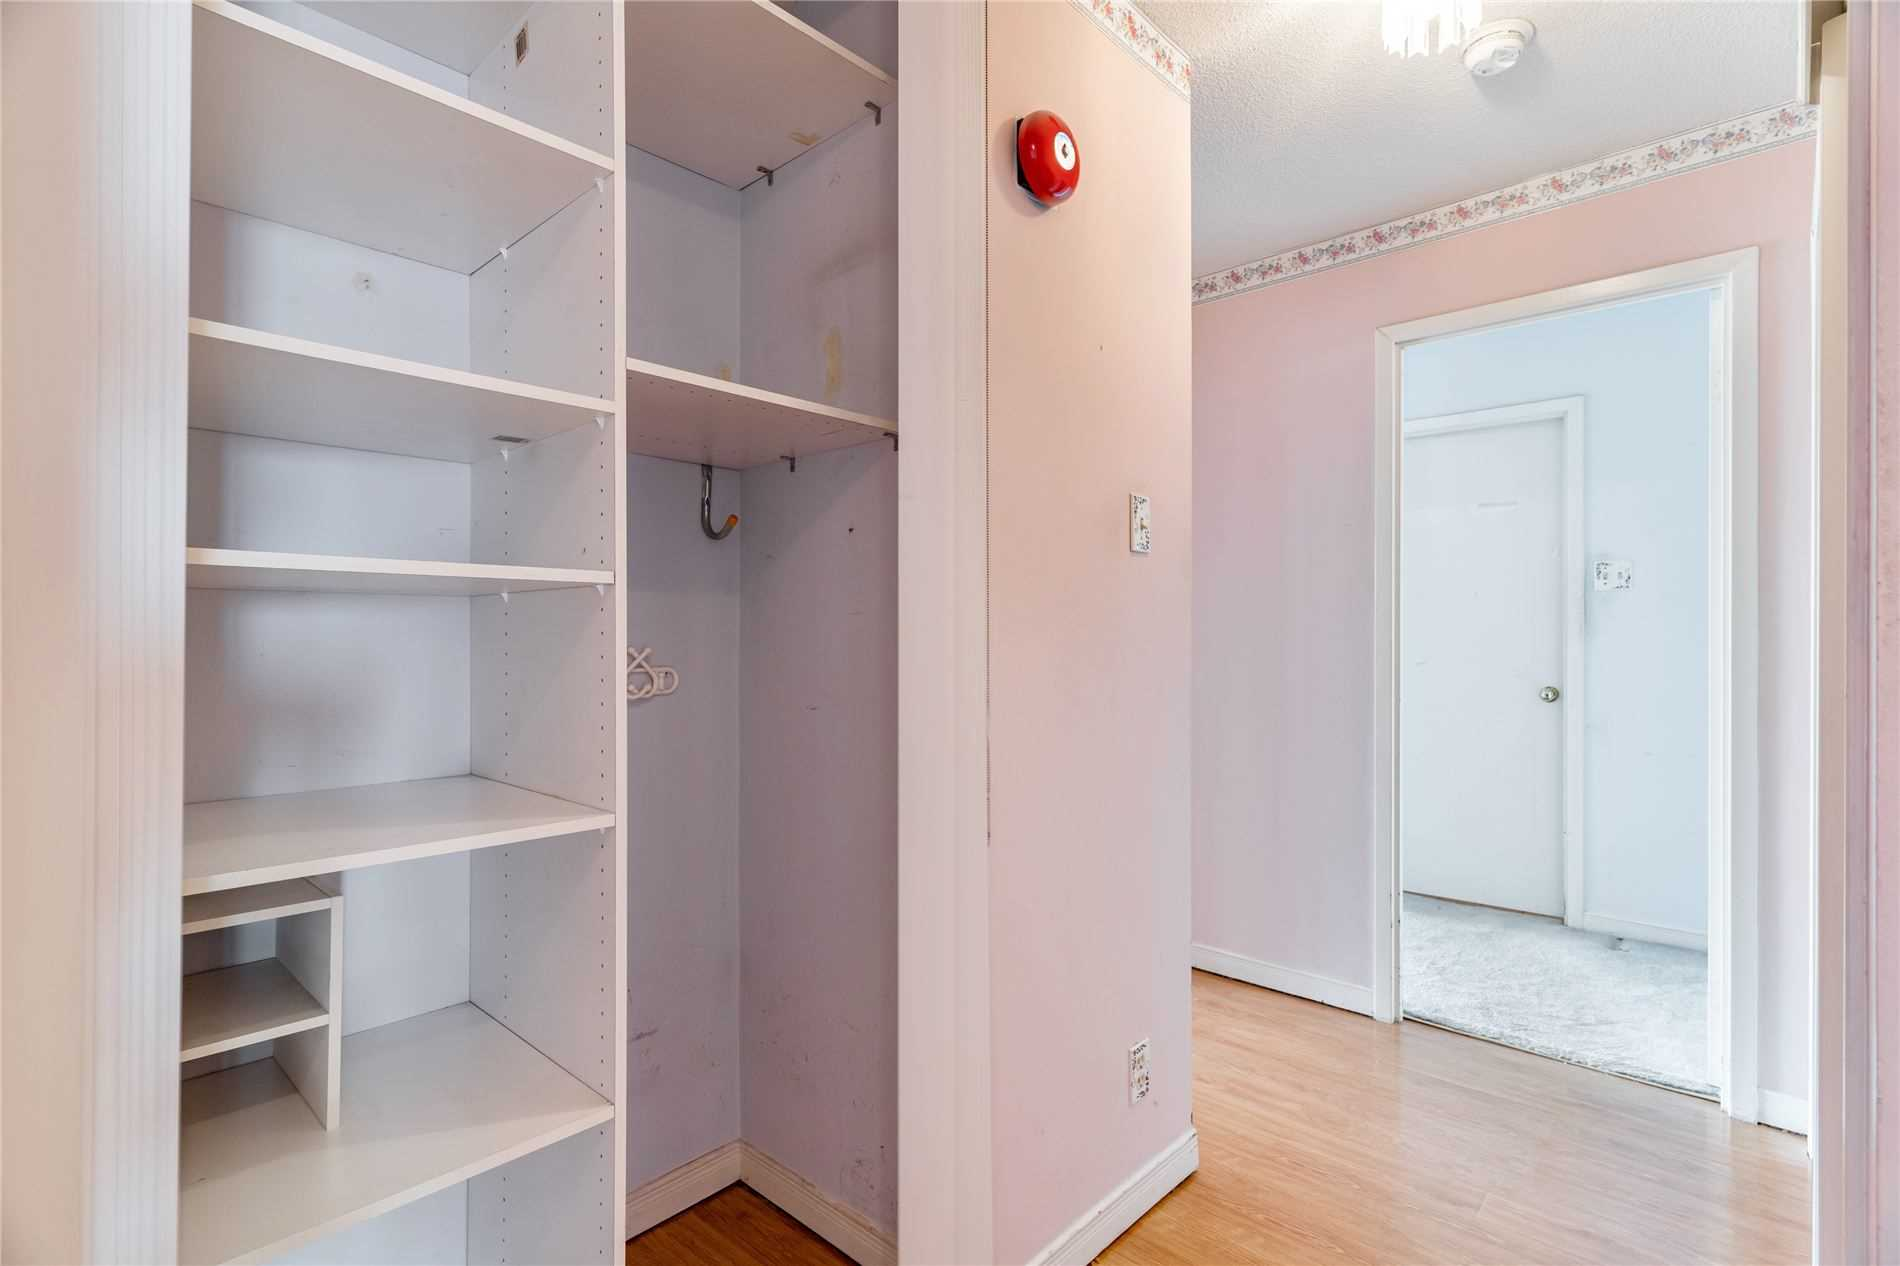 Image 19 of 40 showing inside of 2 Bedroom Condo Apt Apartment for Sale at 1665 Pickering Pkwy Unit# 812, Pickering L1V6L4